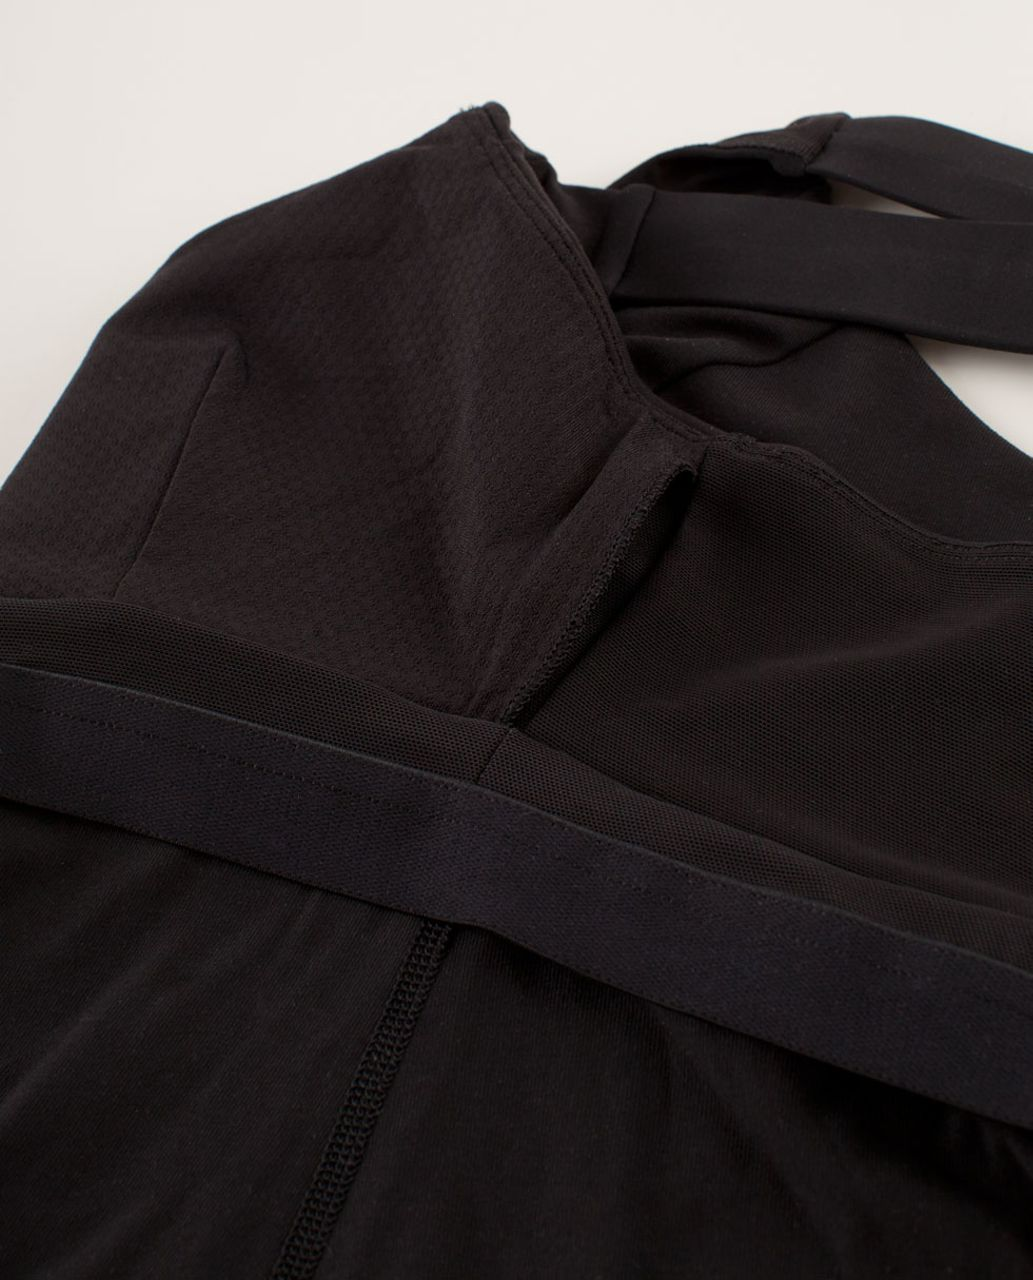 Lululemon Deep Breath Tank (First Release) - Black